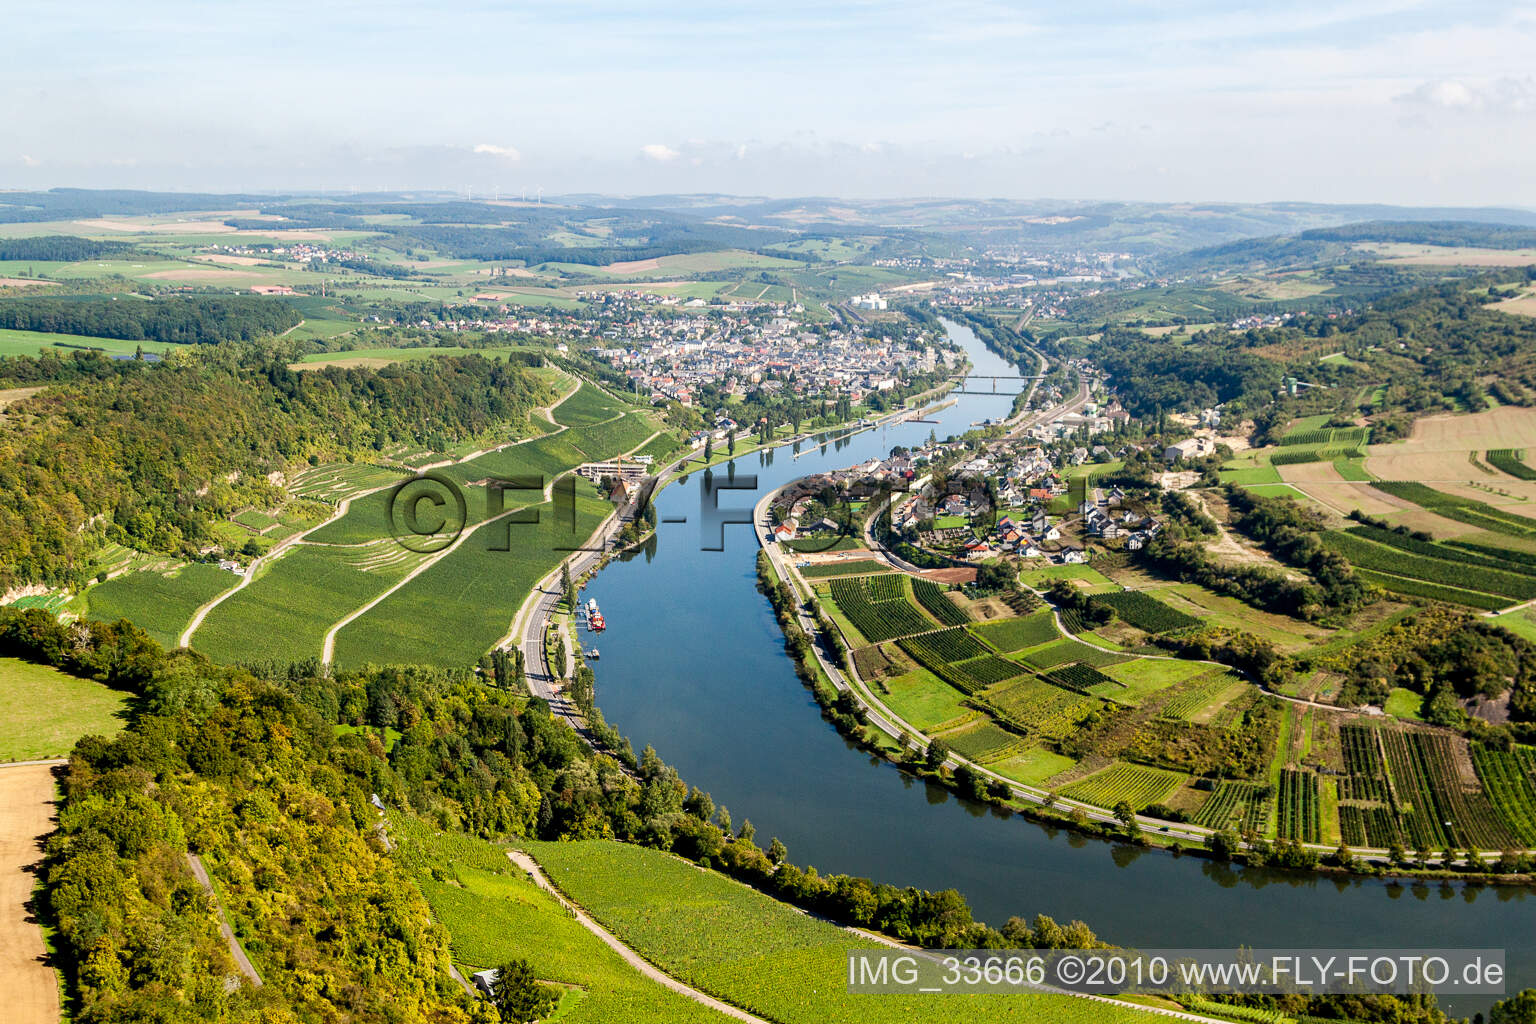 Luftbild von Dorfkern an den Fluß- Uferbereichen der Mosel in Wellen im Bundesland Rheinland-Pfalz, Deutschland. // Village on the river bank areas of the river Mosel in Wellen in the state Rhineland-Palatinate, Germany.